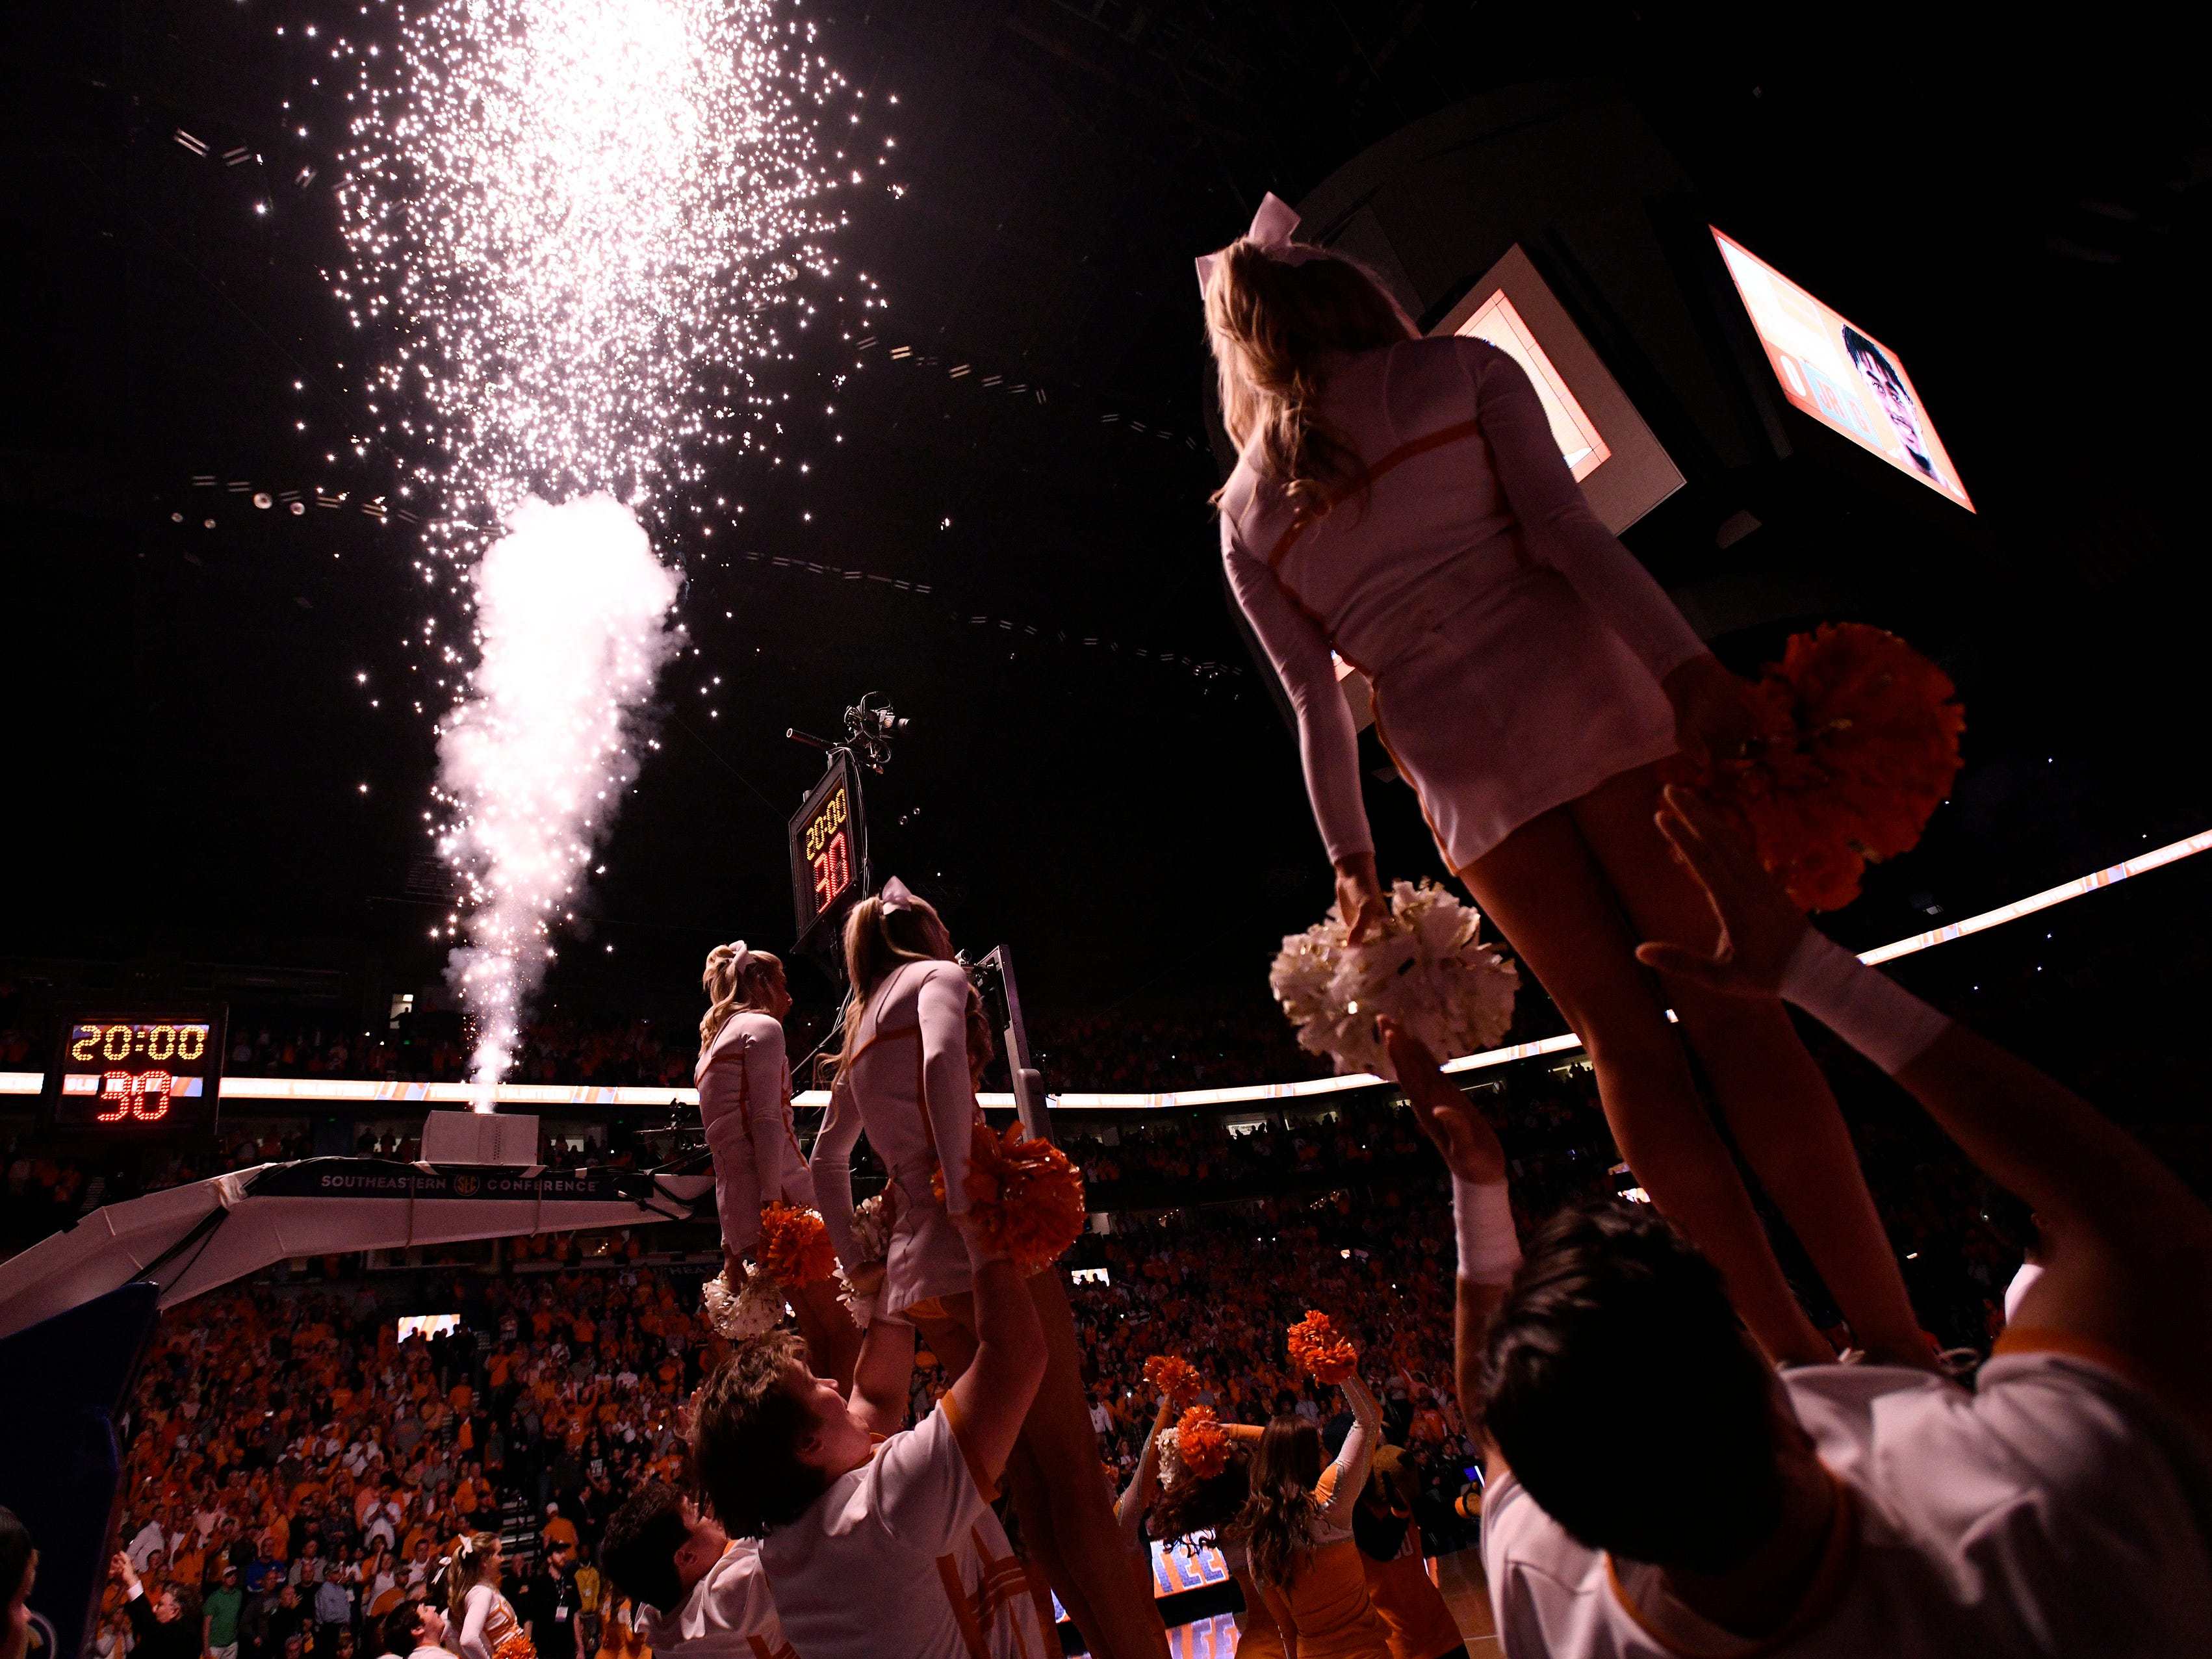 Tennessee cheerleaders lead the crowd before the start of the SEC Men's Basketball Tournament championship game against Auburn at Bridgestone Arena in Nashville, Tenn., Sunday, March 17, 2019.